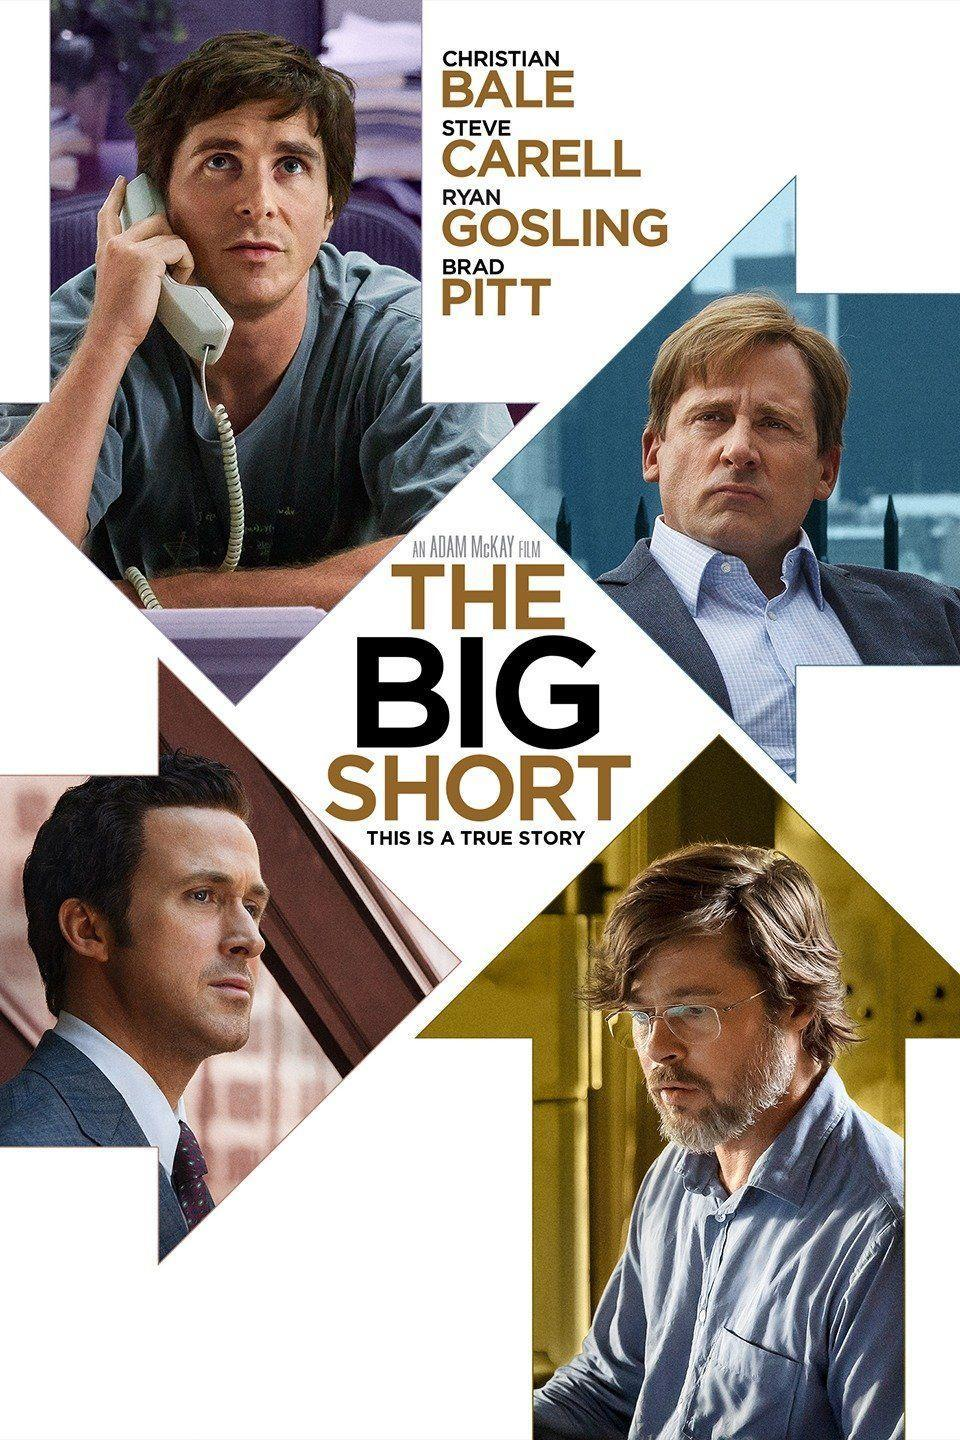 """<p><a class=""""link rapid-noclick-resp"""" href=""""https://www.amazon.com/Big-Short-Christian-Bale/dp/B019969US8?tag=syn-yahoo-20&ascsubtag=%5Bartid%7C10067.g.15907978%5Bsrc%7Cyahoo-us"""" rel=""""nofollow noopener"""" target=""""_blank"""" data-ylk=""""slk:Watch Now"""">Watch Now</a></p><p>Based on the best-selling book by Michael Lewis, <em>The Big Short</em> tells the story of a small cadre who saw the 2008 financial crash coming. The acting is superb—what with Christian Bale, Steve Carell, Ryan Gosling, and Brad Pitt, how could it not be?—and the film manages to make the minutiae of Wall Street comprehensible, even interesting. </p>"""